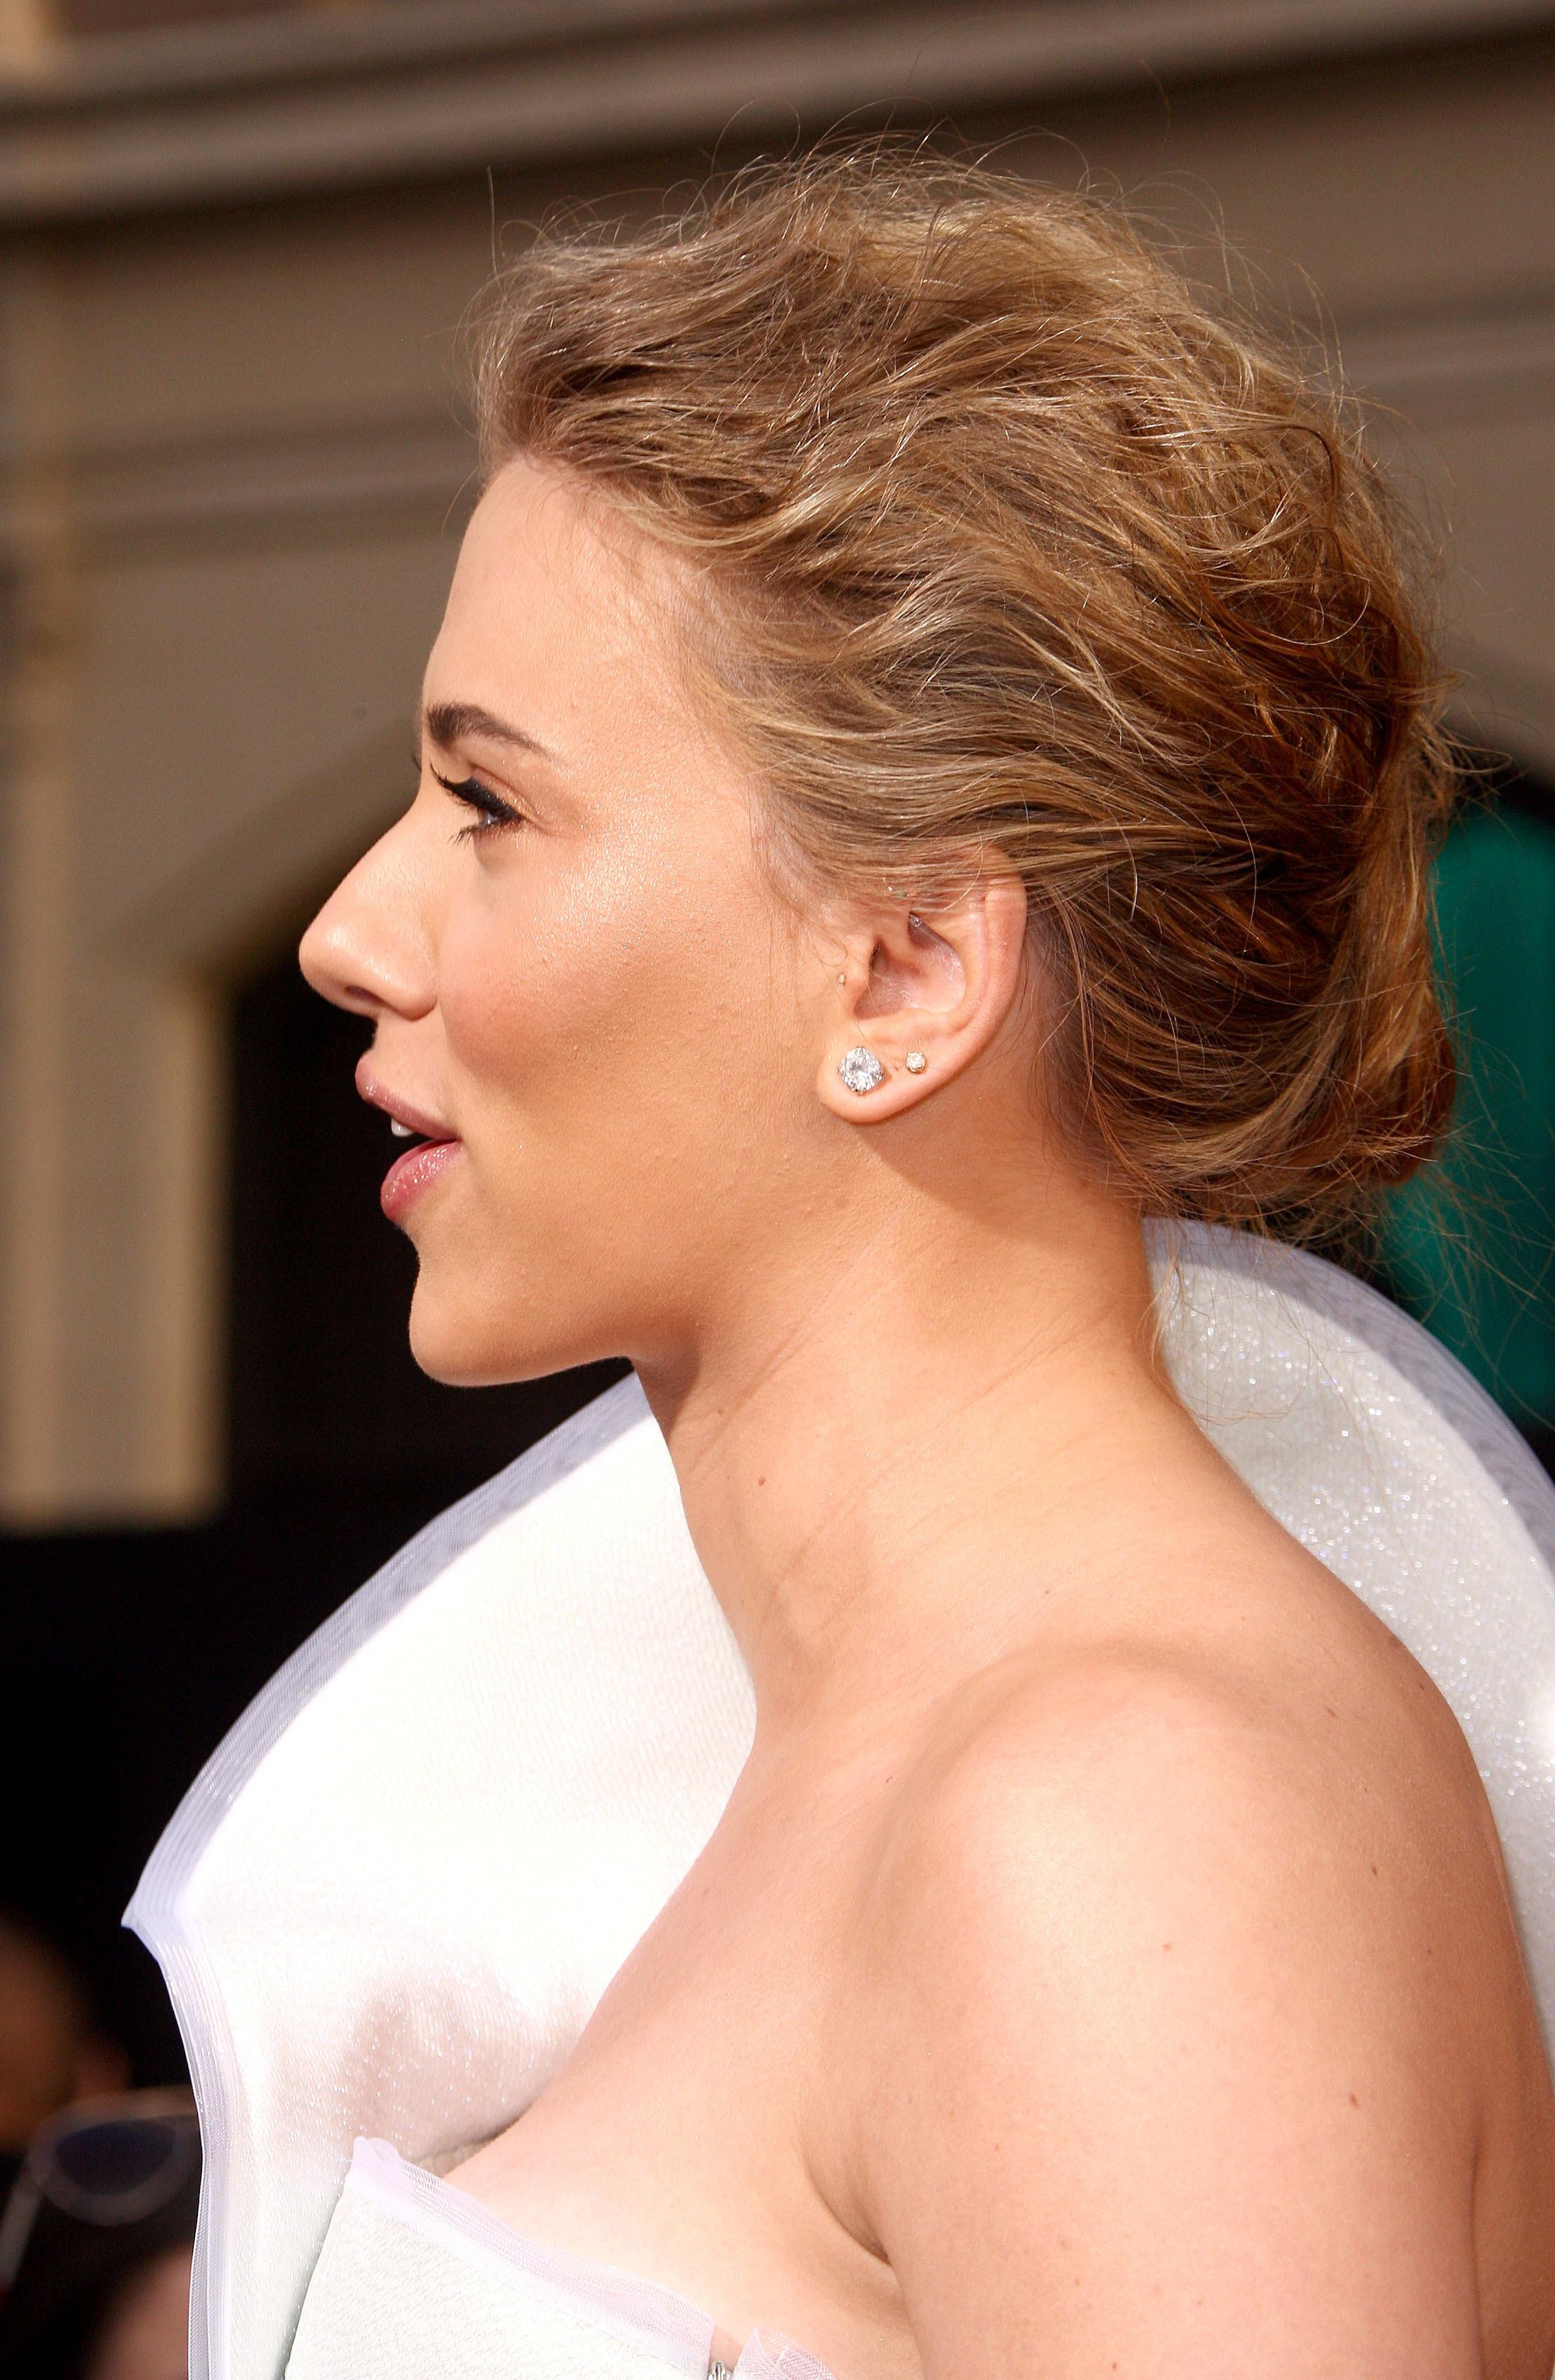 50774_celebrity_paradise.com_Scarlett_Johansson_Iron_Man_2_World_Premiere_in_Hollywood_26.04.2010_20_122_180lo.jpg